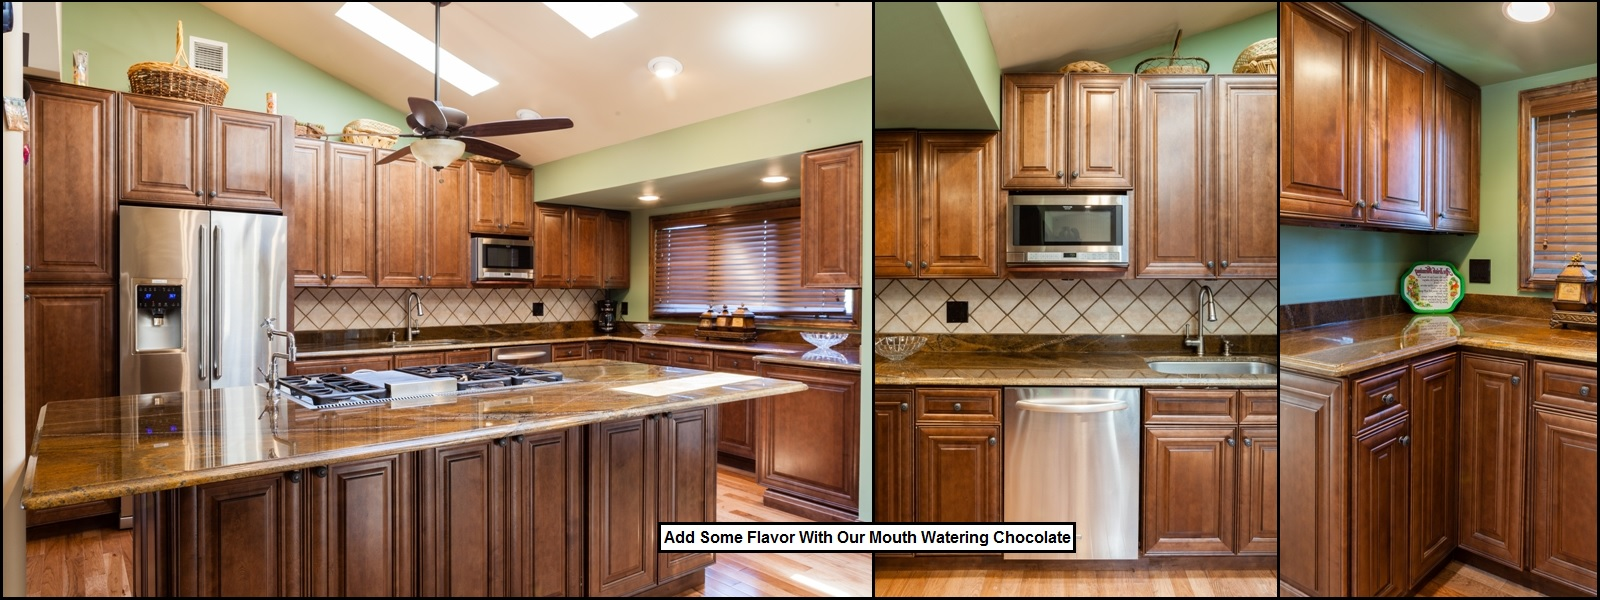 Scottsdale high quality kitchen and cabinets countertops for Quality kitchen cabinets